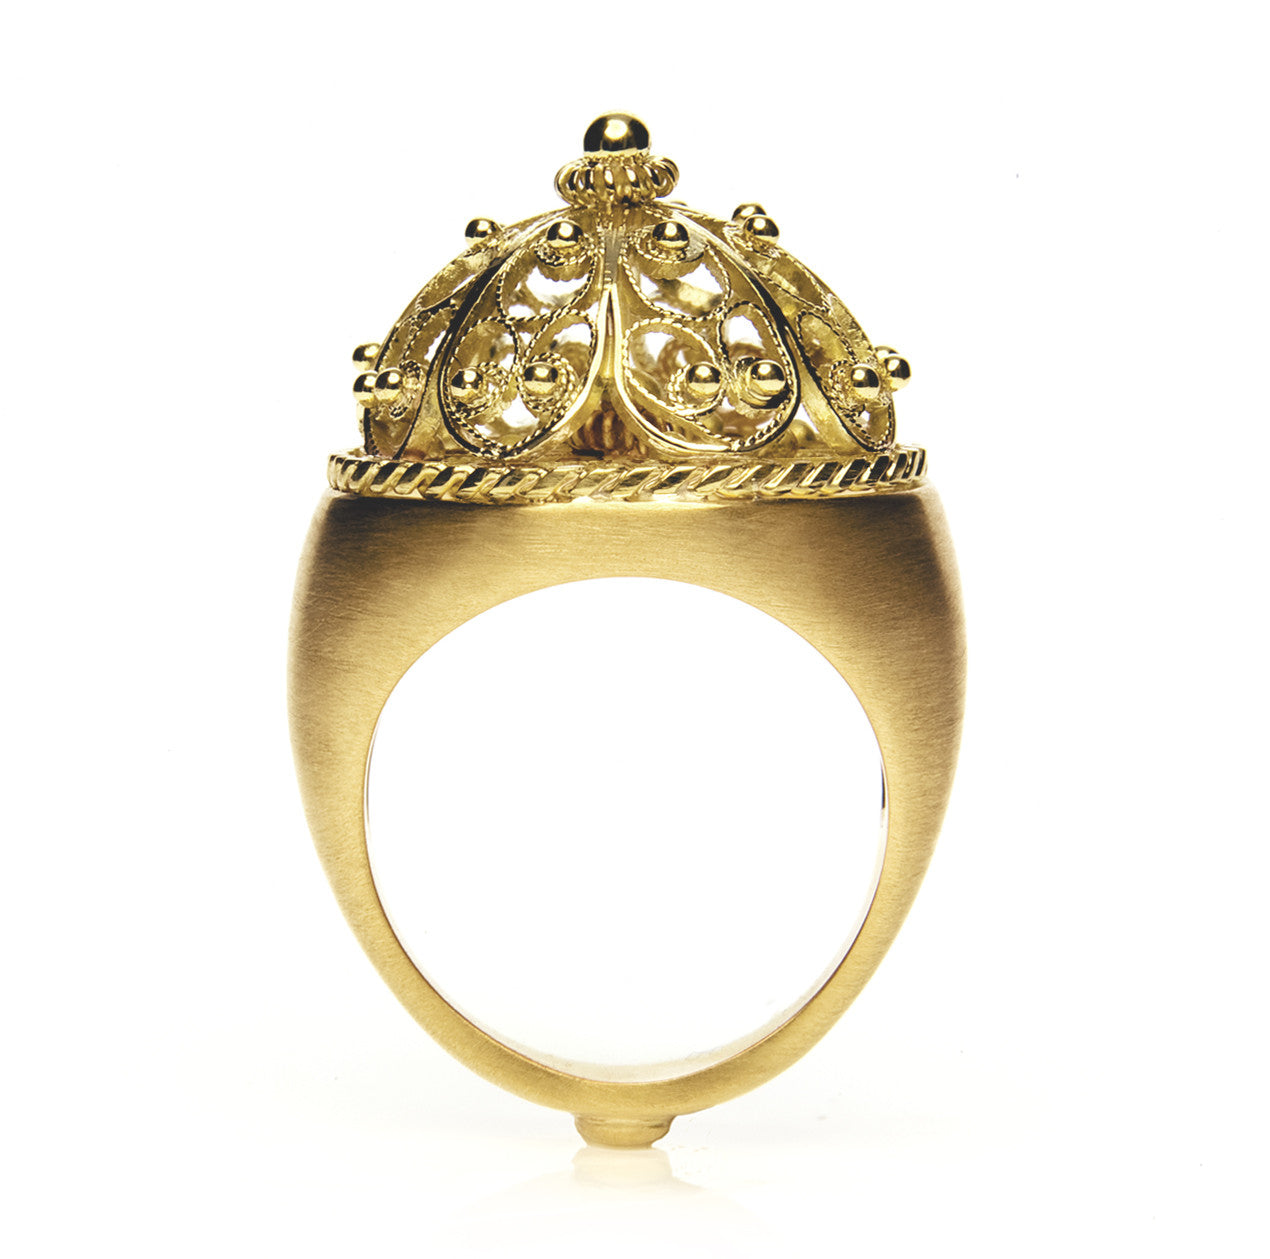 Bespoke Jewellery - Cabuchon filigree Ring flat - Arabel Lebrusan